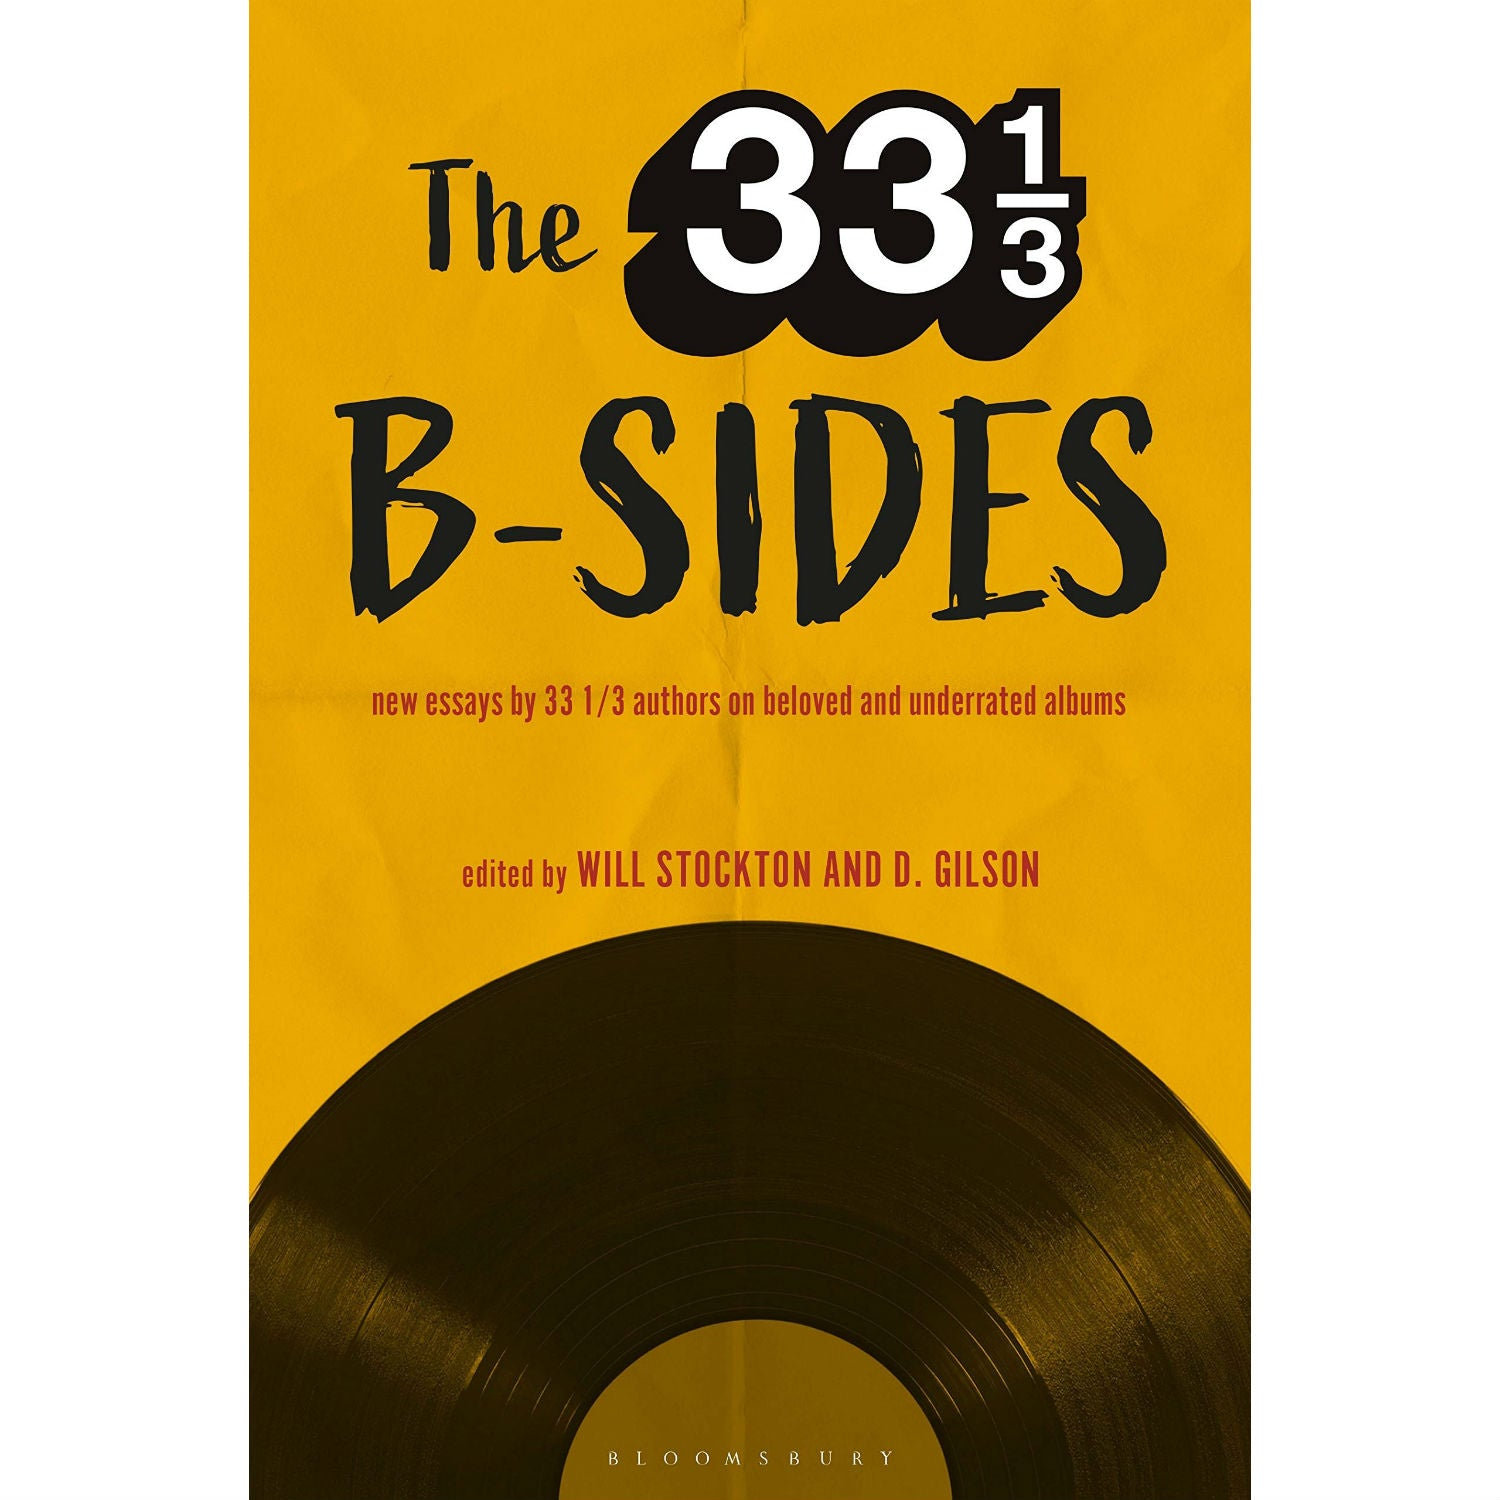 33 1/3 B-sides: New Essays by 33 1/3 Authors on Beloved and Underrated Albums